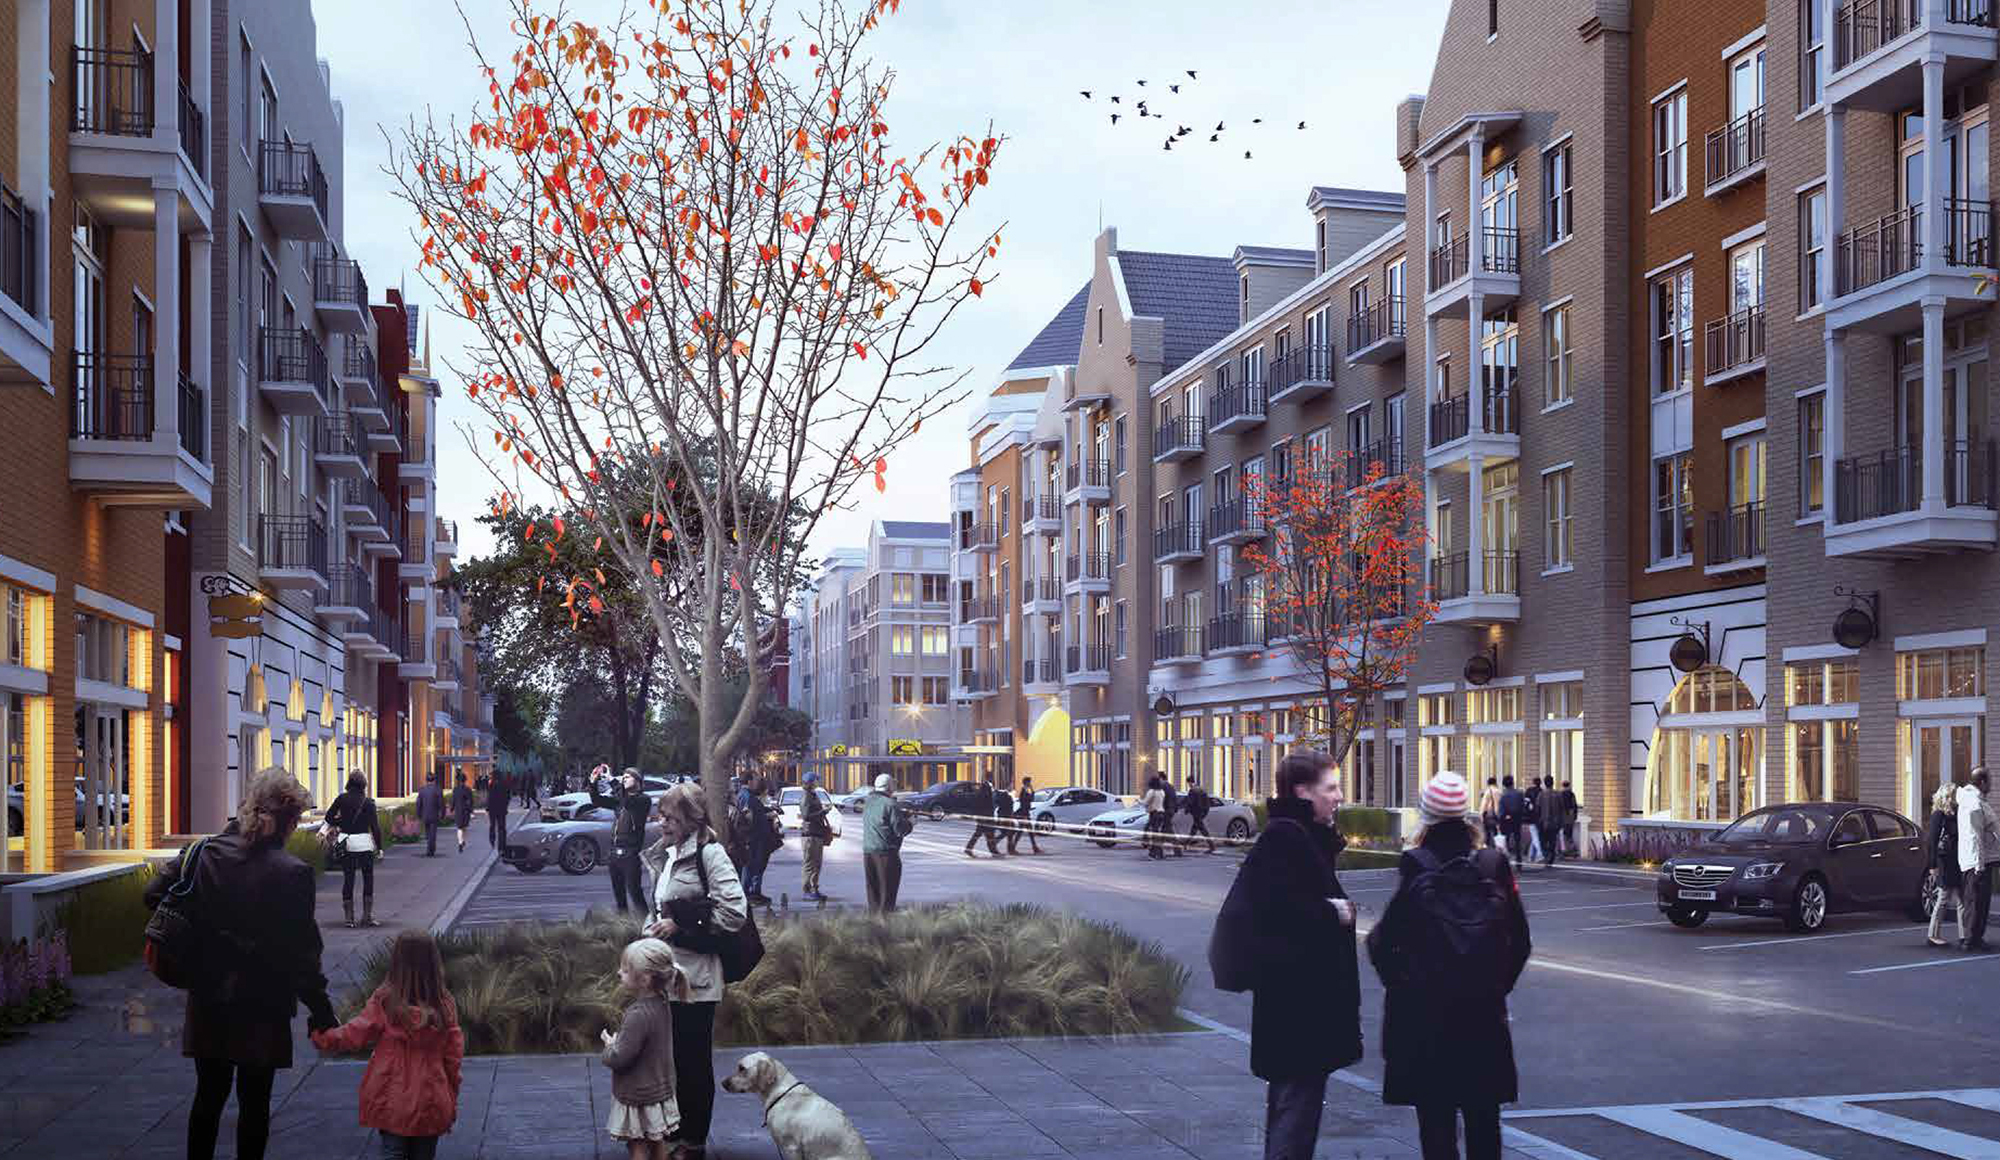 Phase II Street View Concept